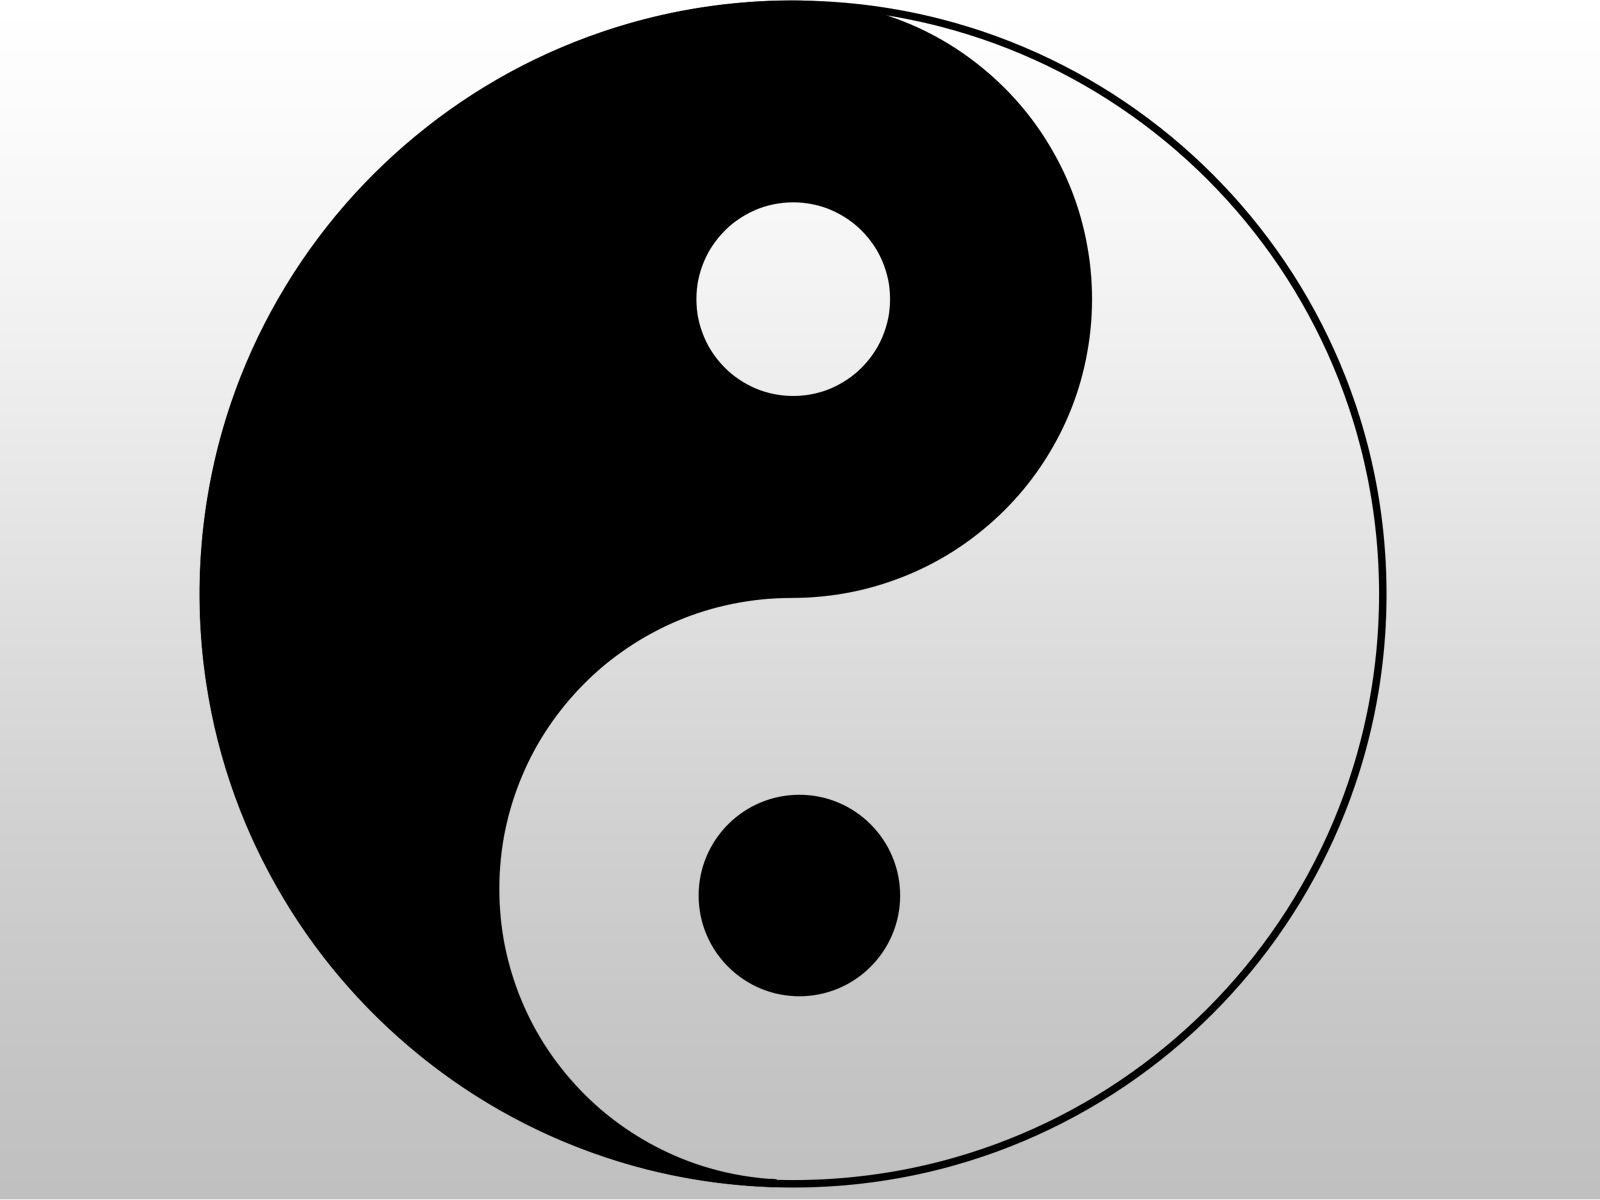 Ying Yang Backgrounds - Wallpaper Cave